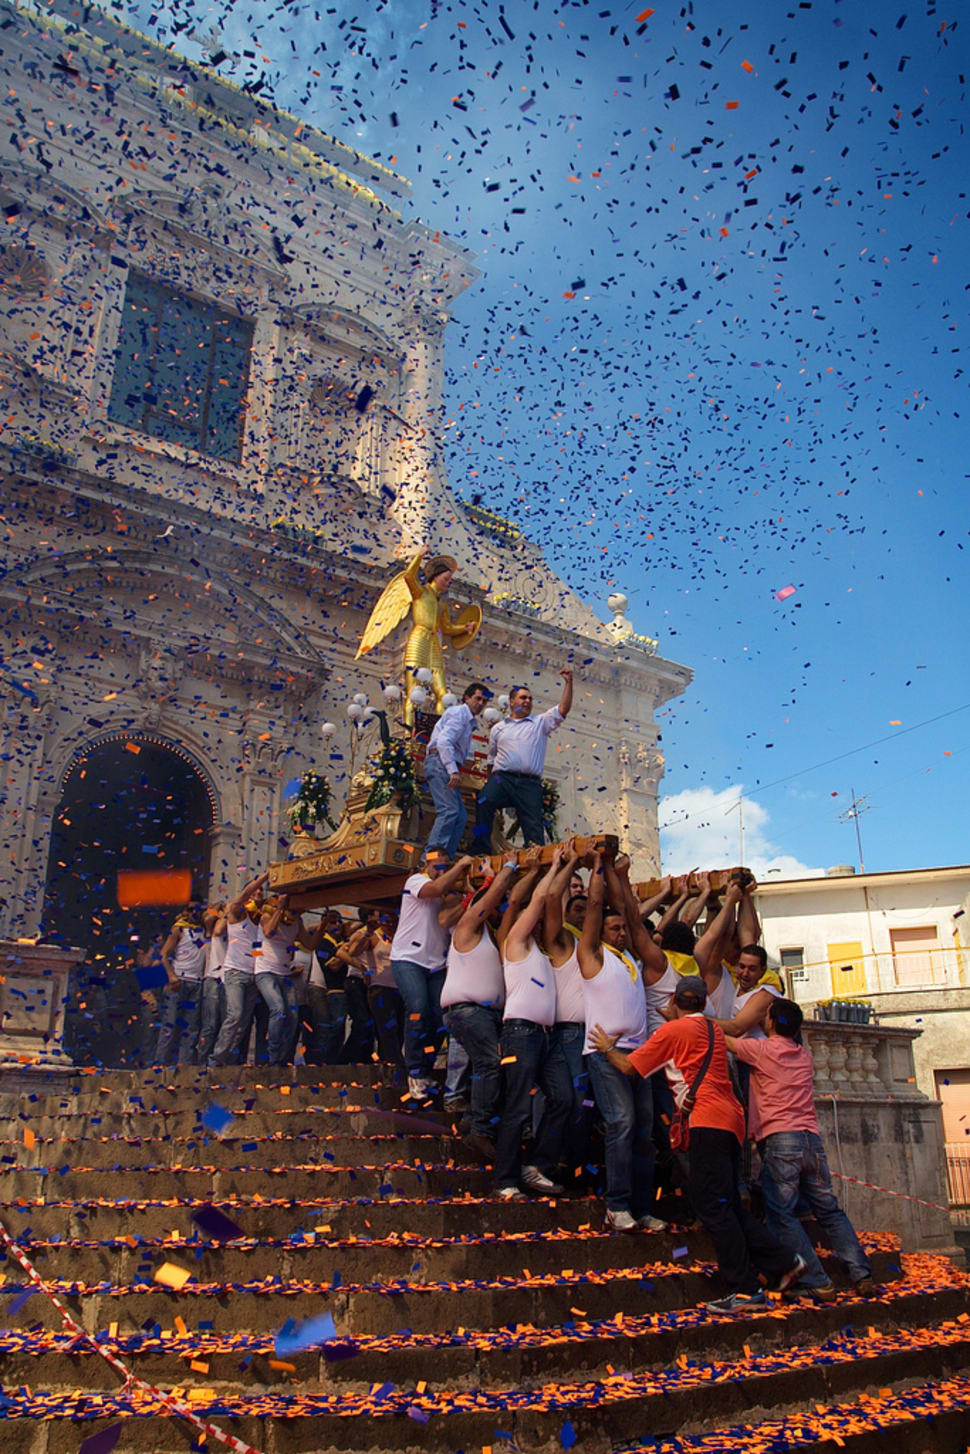 Best time to see The Feast of Archangel Michael in Sicily